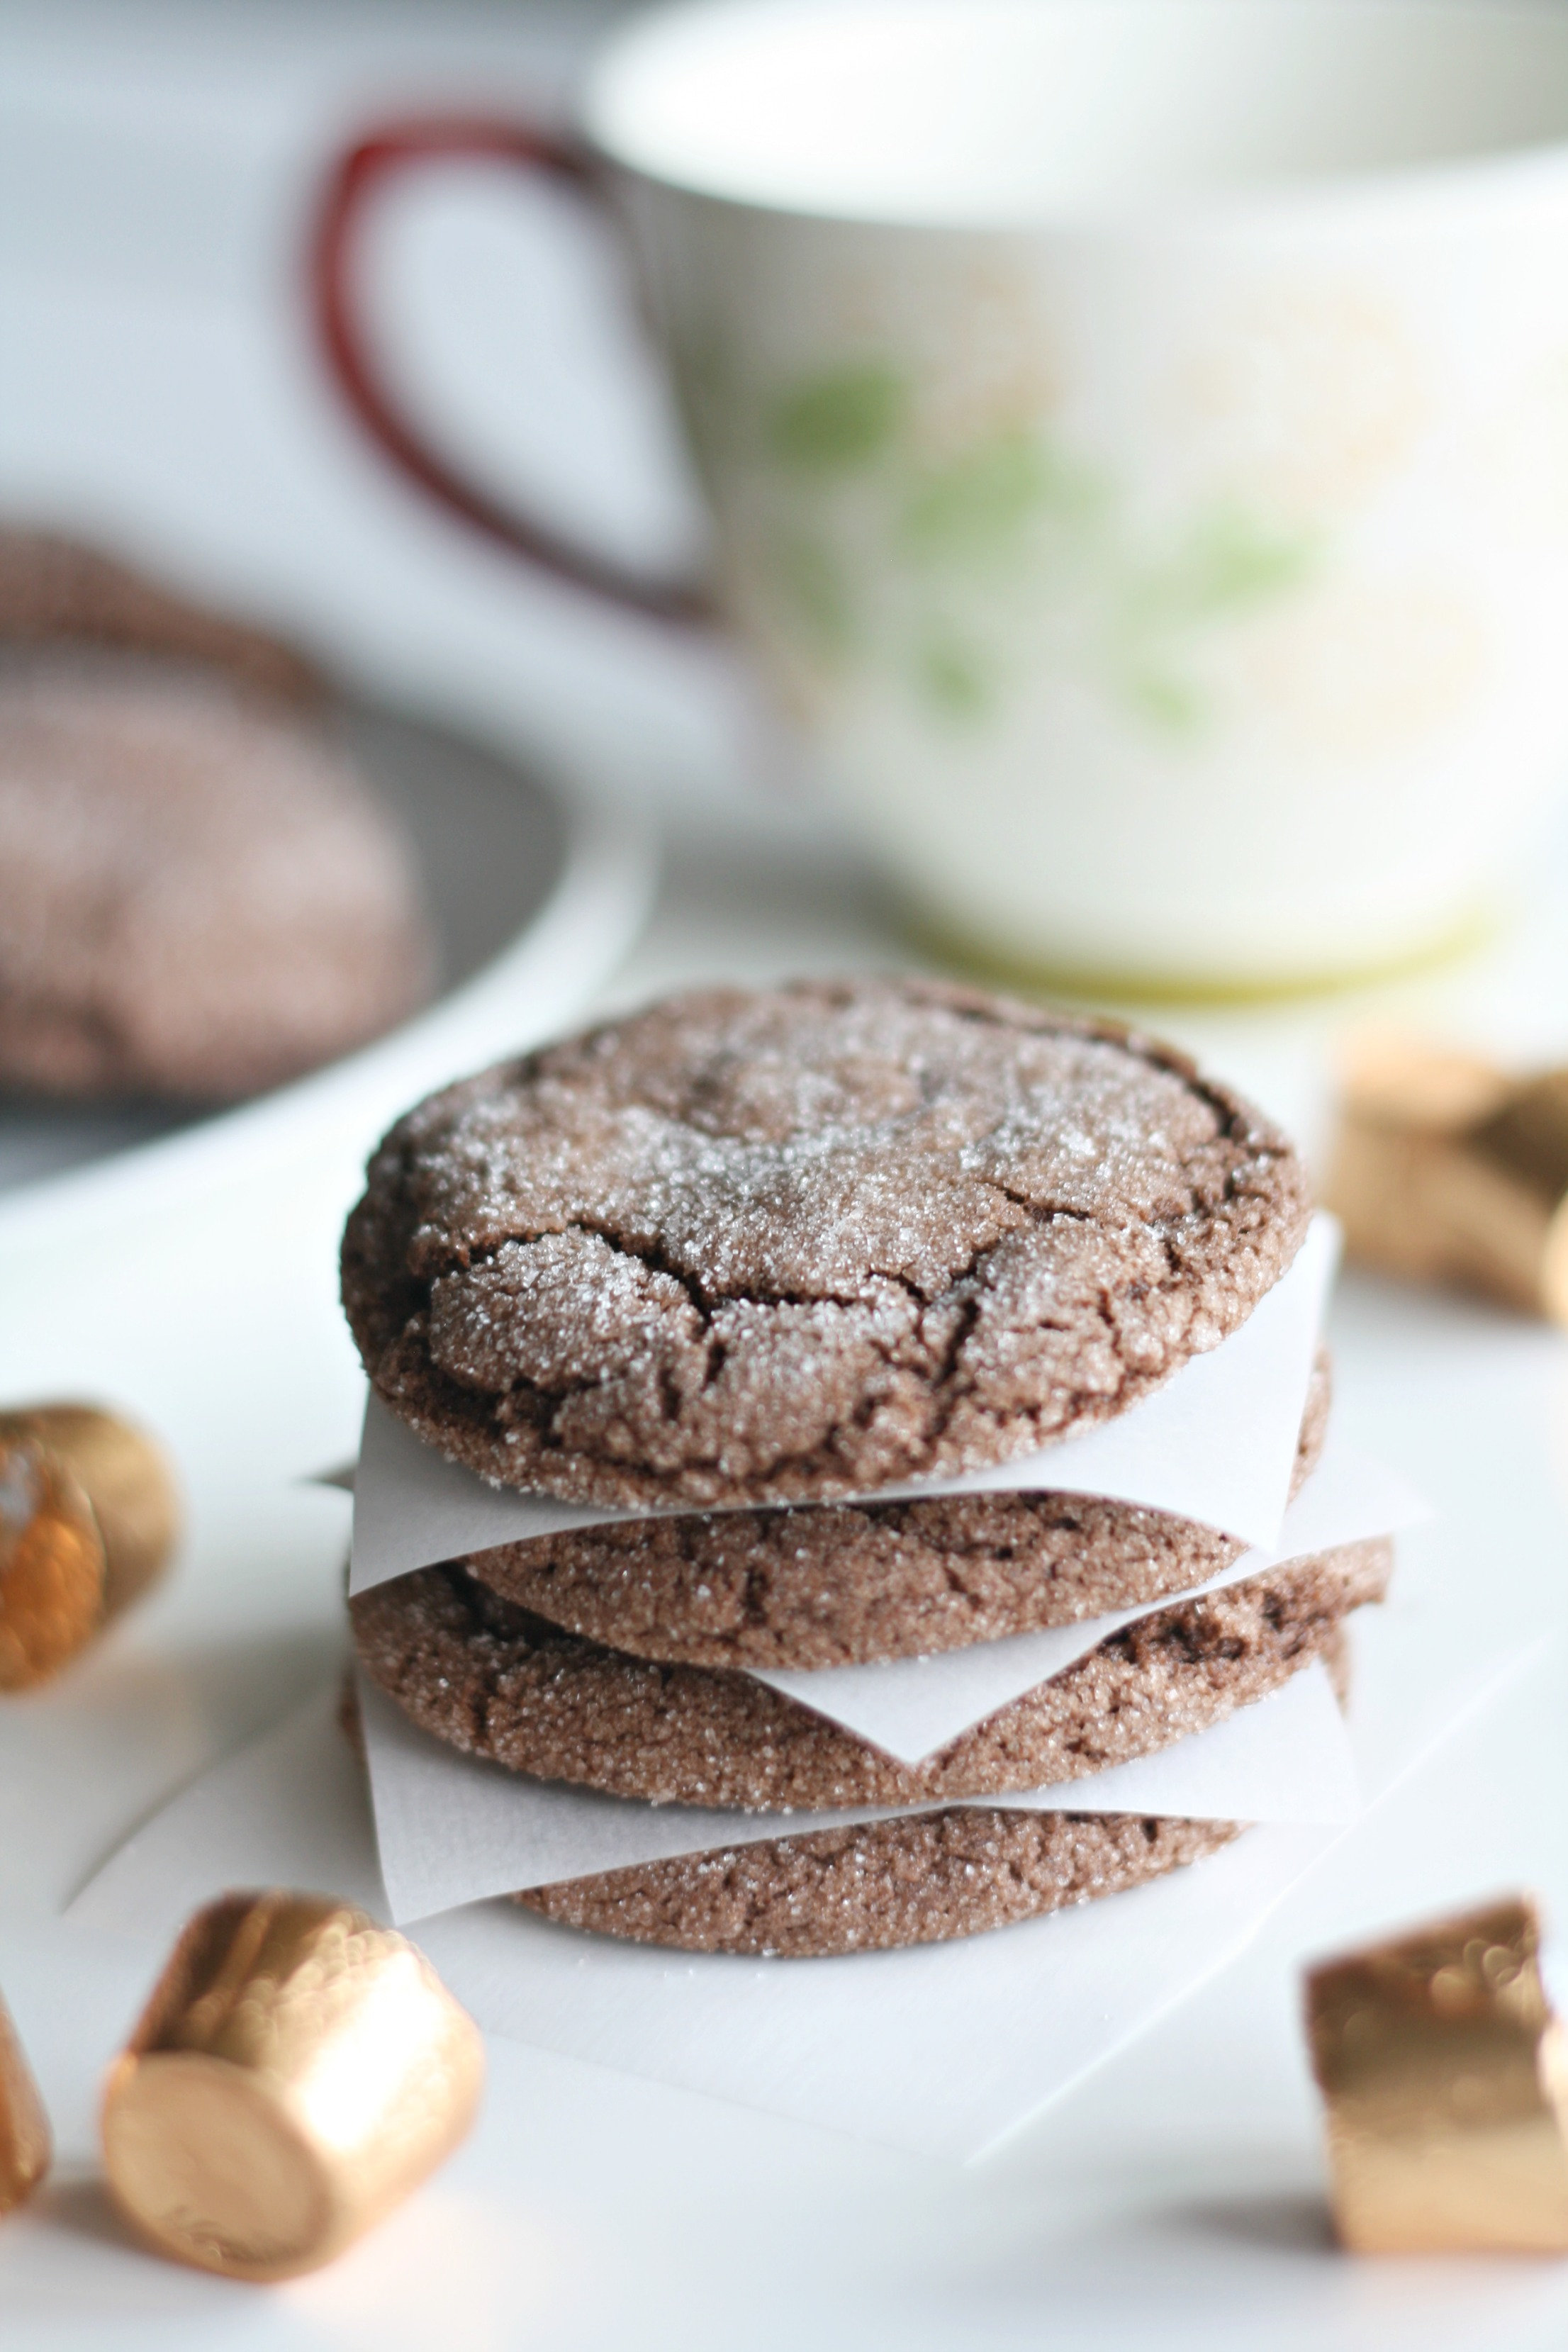 Delicious chocolate cookies made with Rolos